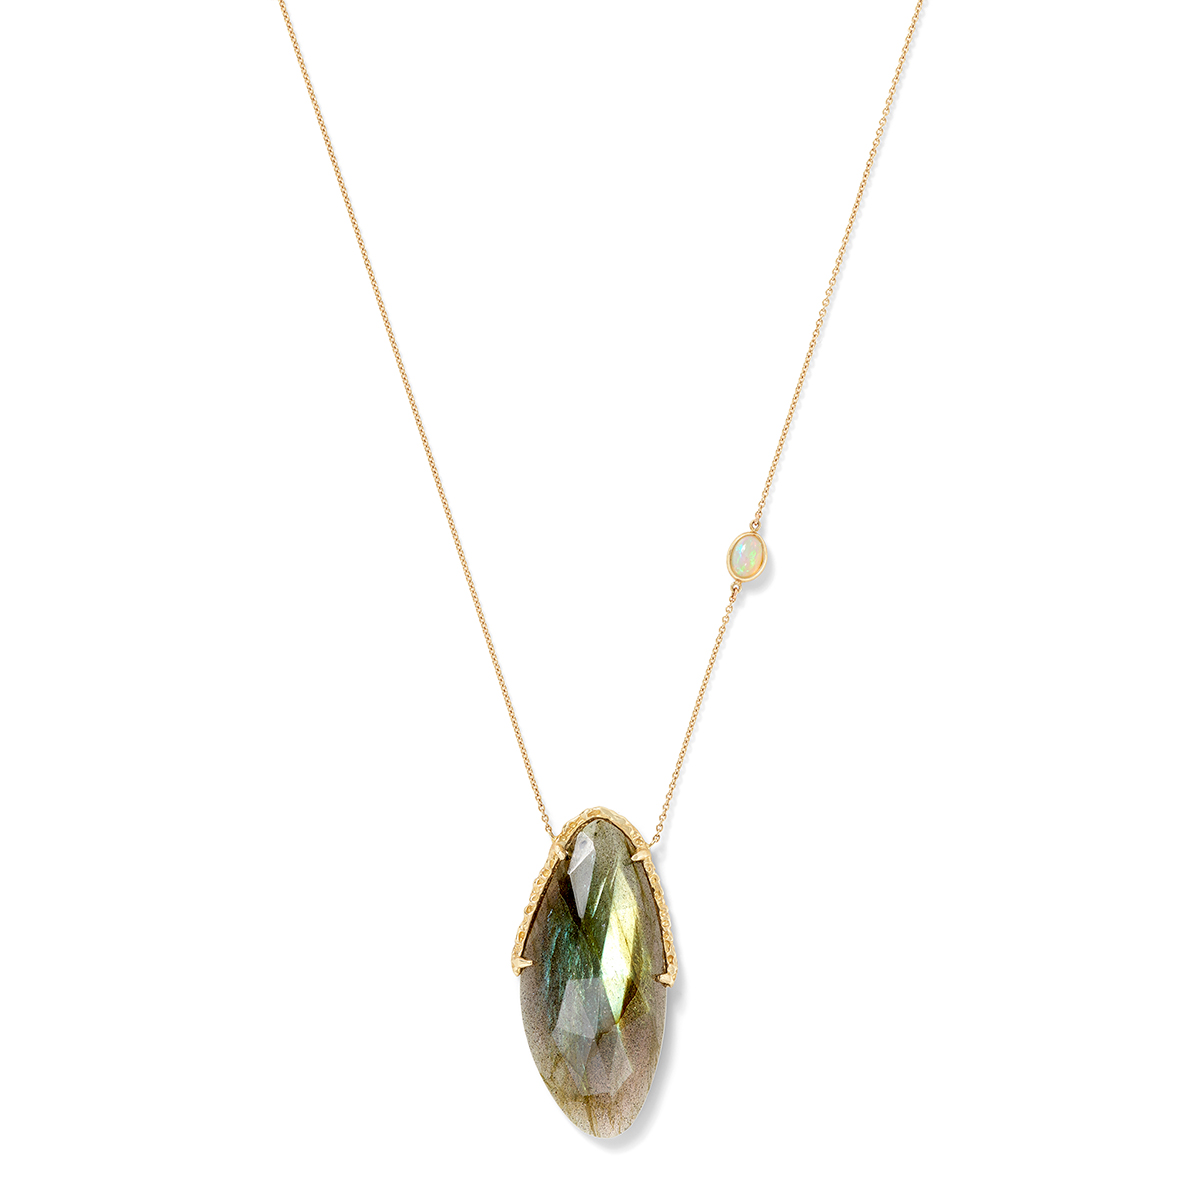 Taryn-Toomey-Airlume-Oval Labradorite-Opal-Necklace.jpg